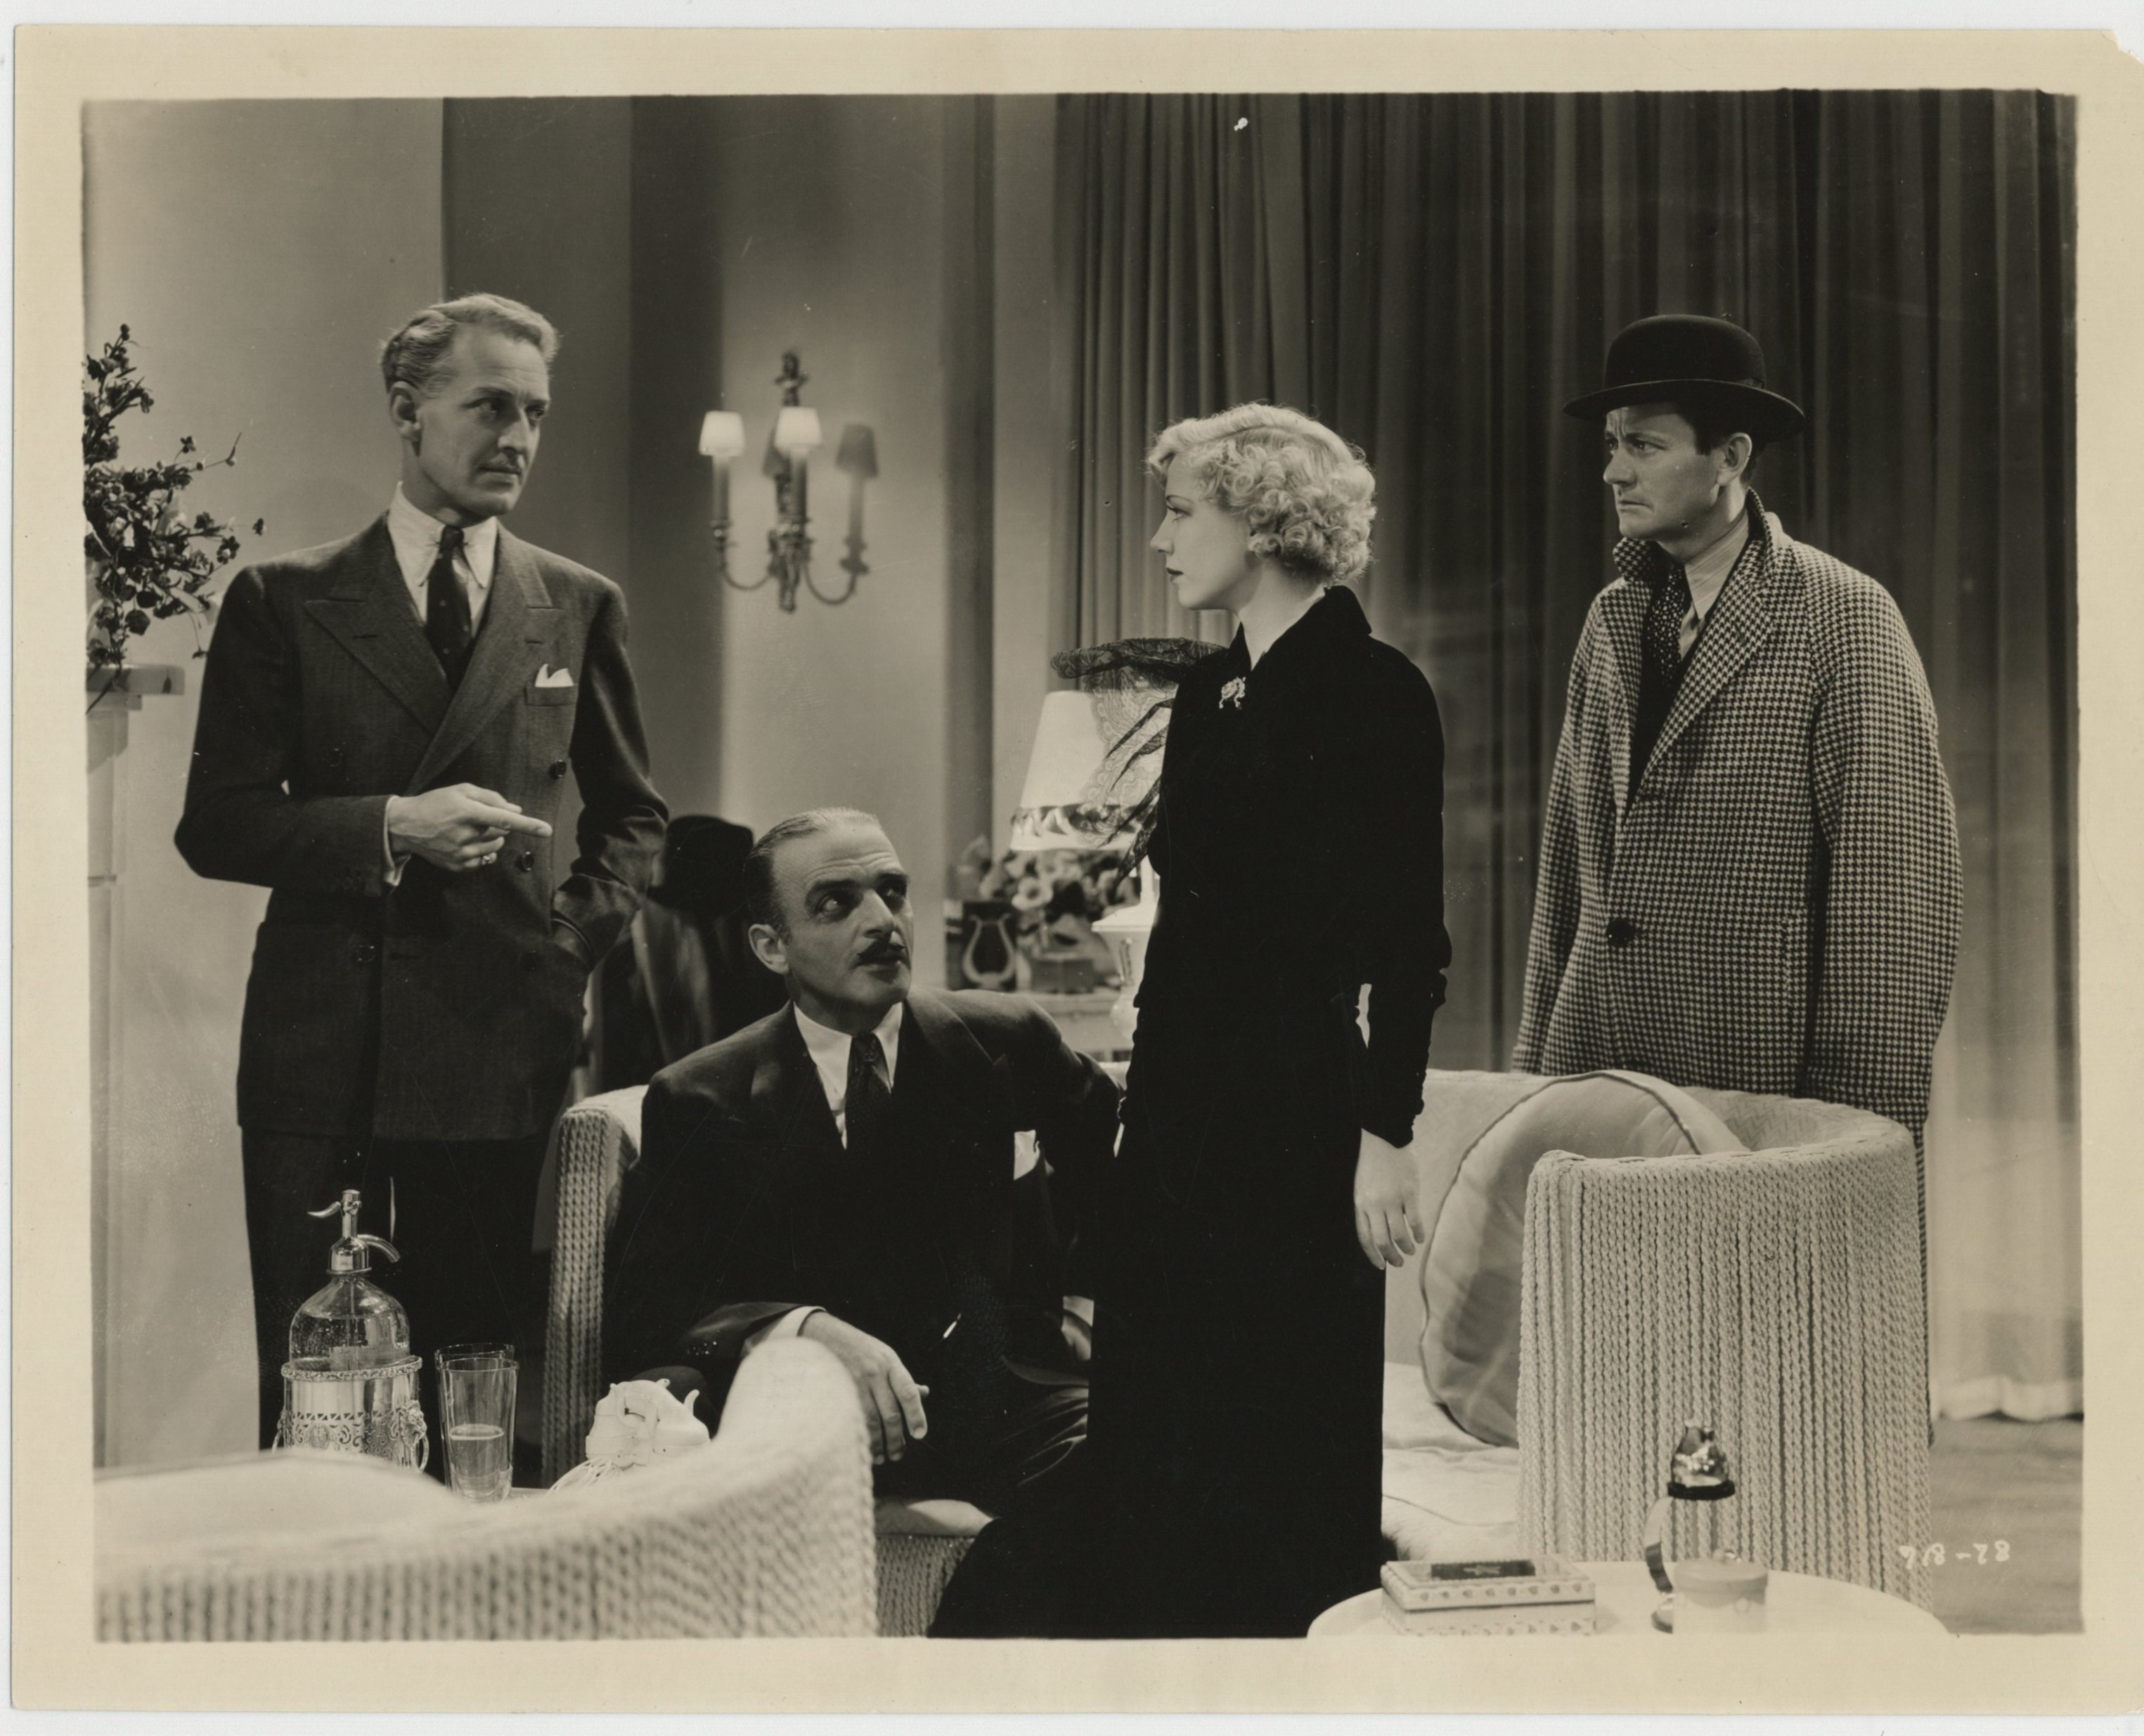 C. Henry Gordon, Isabel Jewell, Roscoe Karns, and Otto Kruger in The Women in His Life (1933)